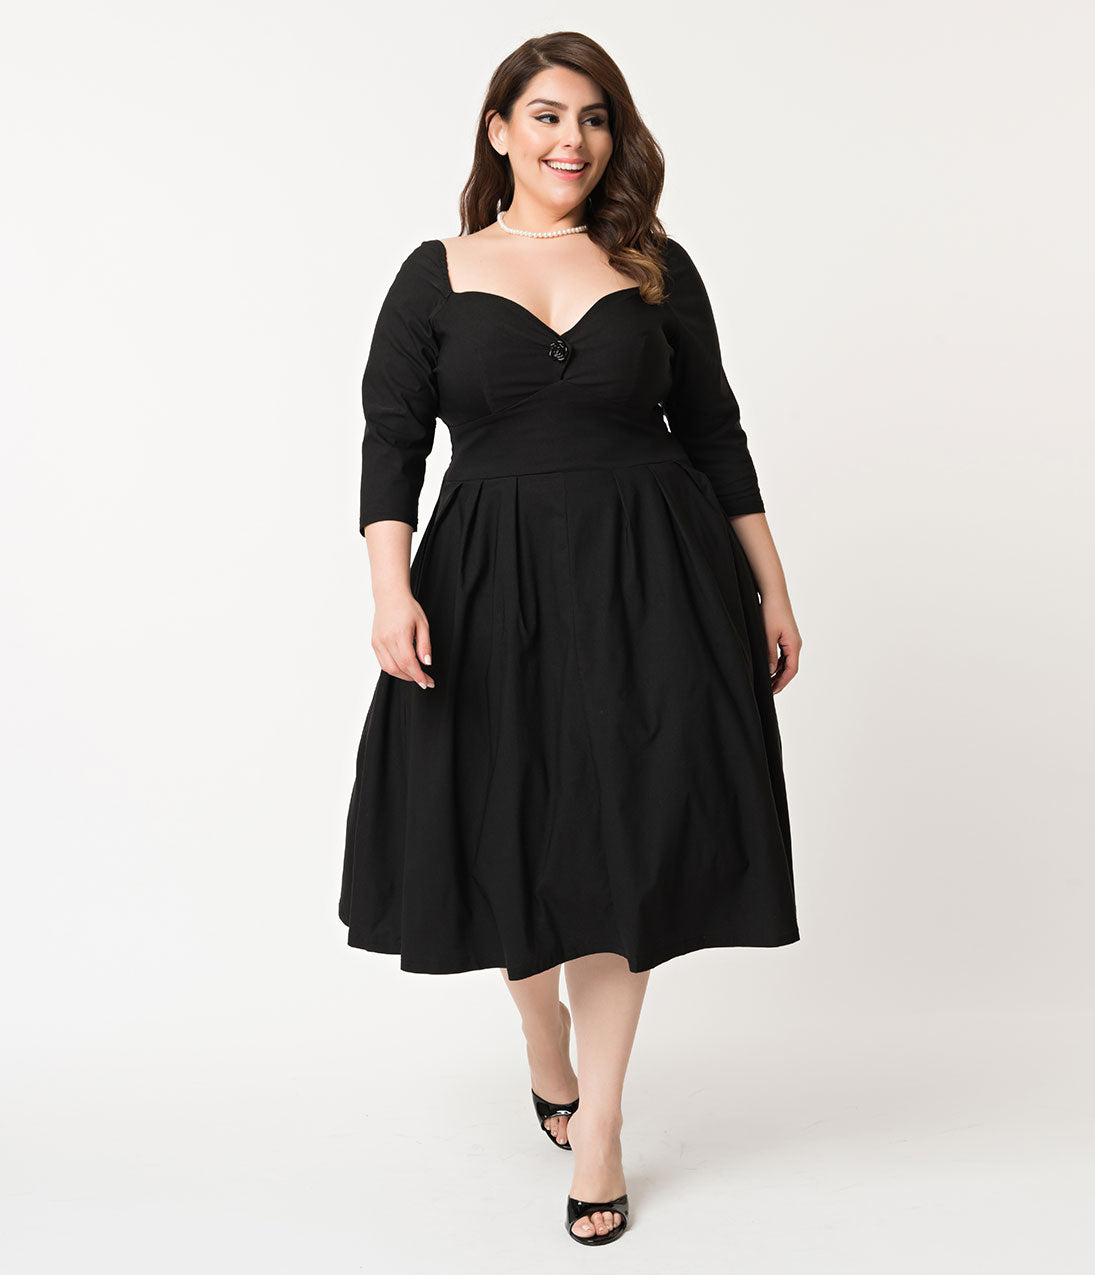 1950s Plus Size Dresses, Swing Dresses Unique Vintage Plus Size 1950S Style Black Bengaline Sweetheart Lamar Swing Dress $98.00 AT vintagedancer.com